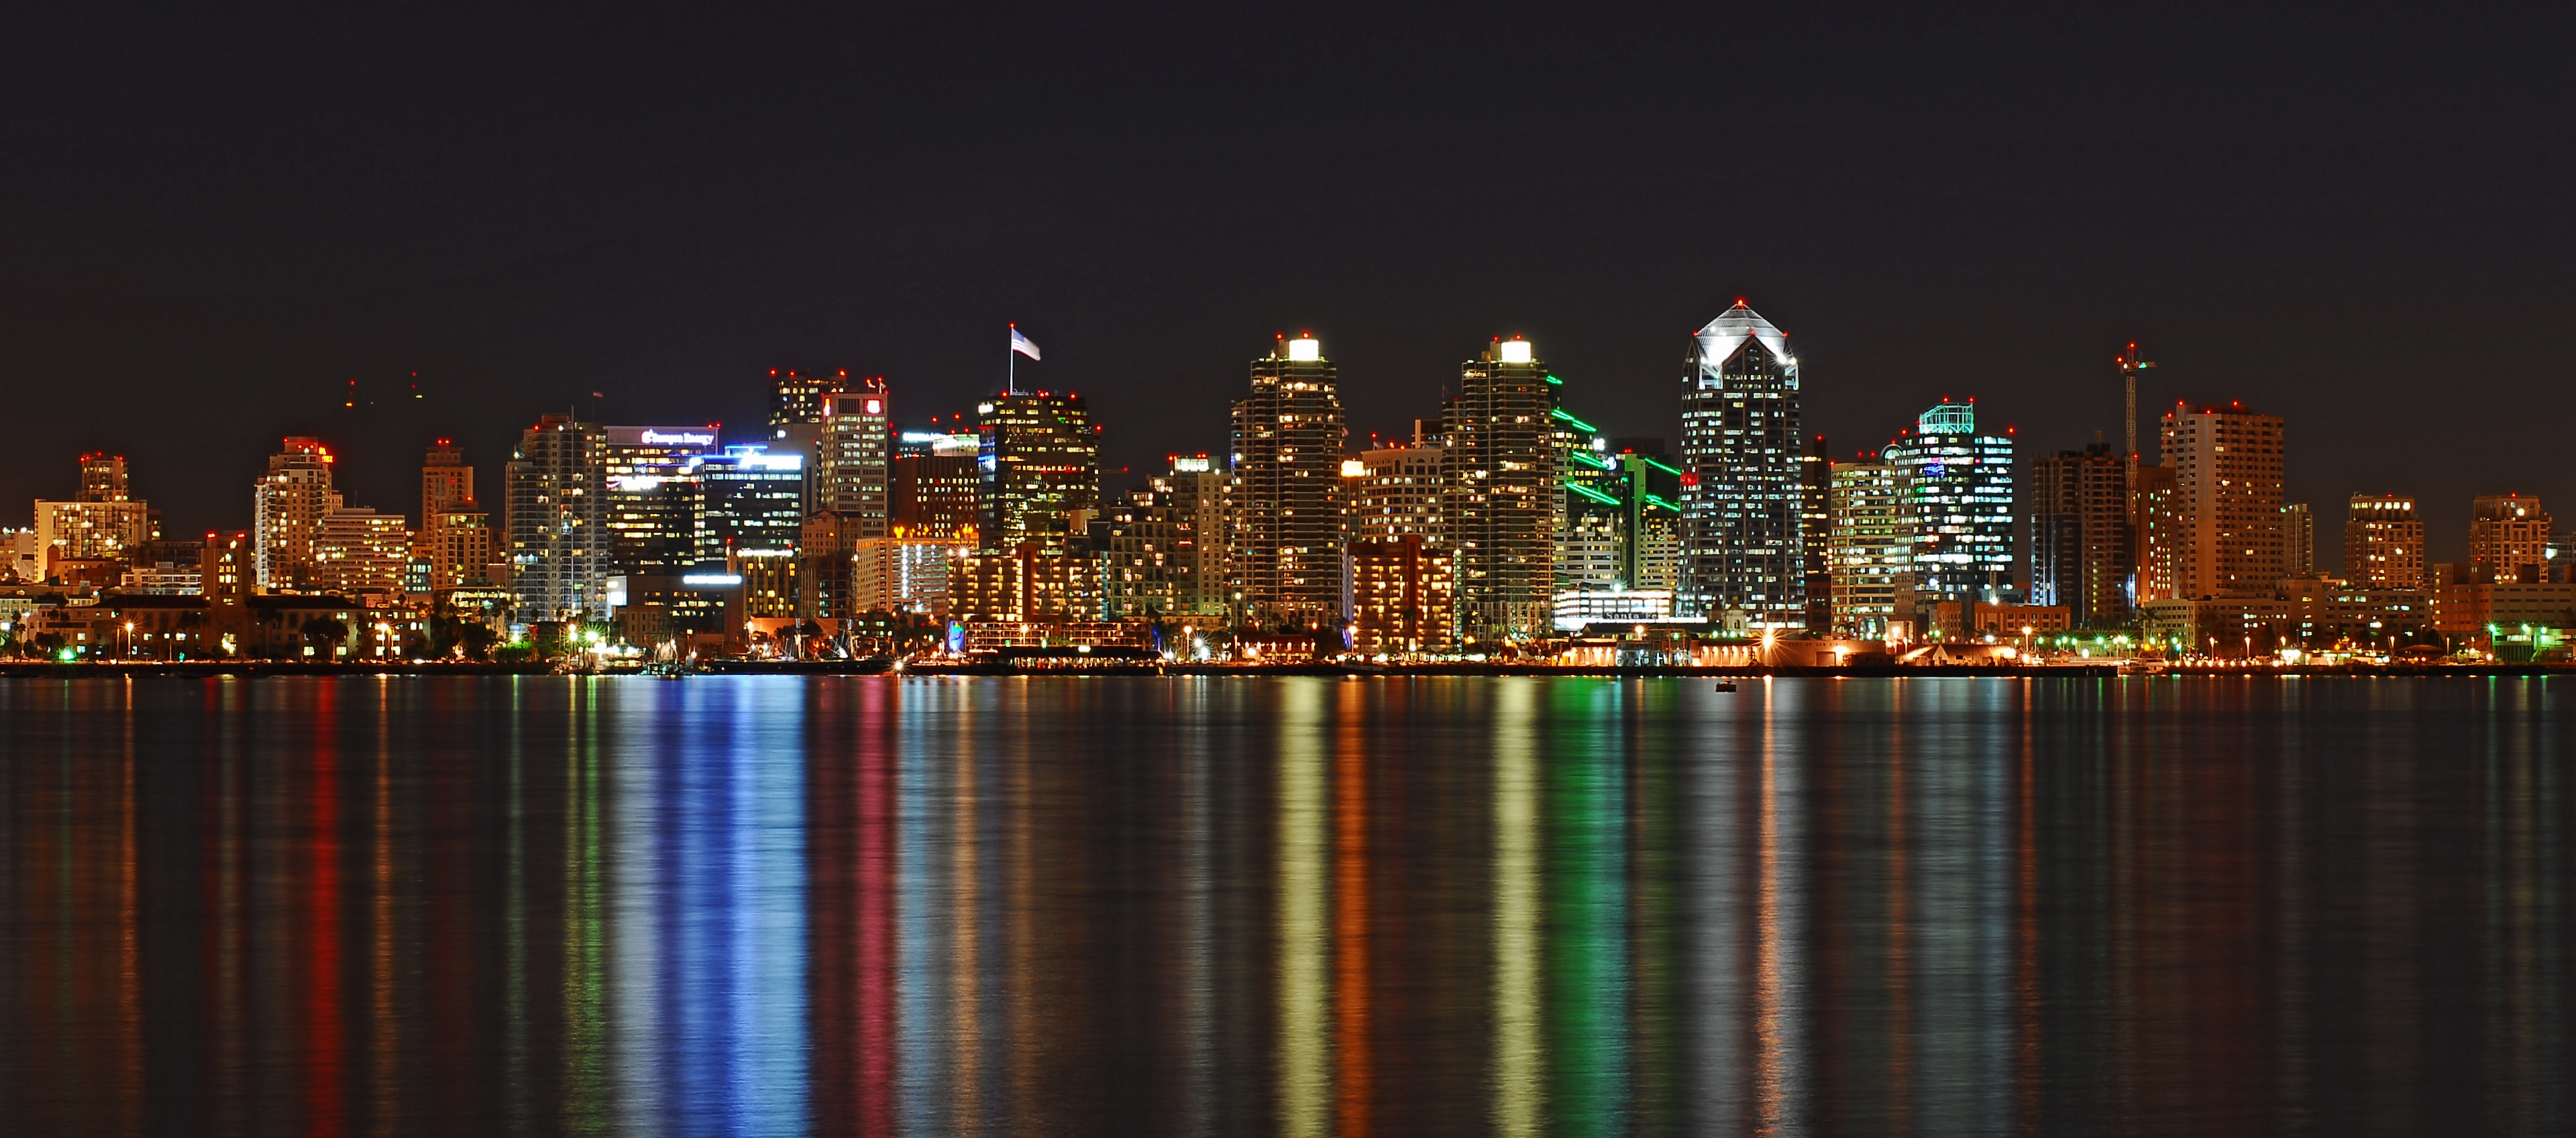 Image of San Diego at night